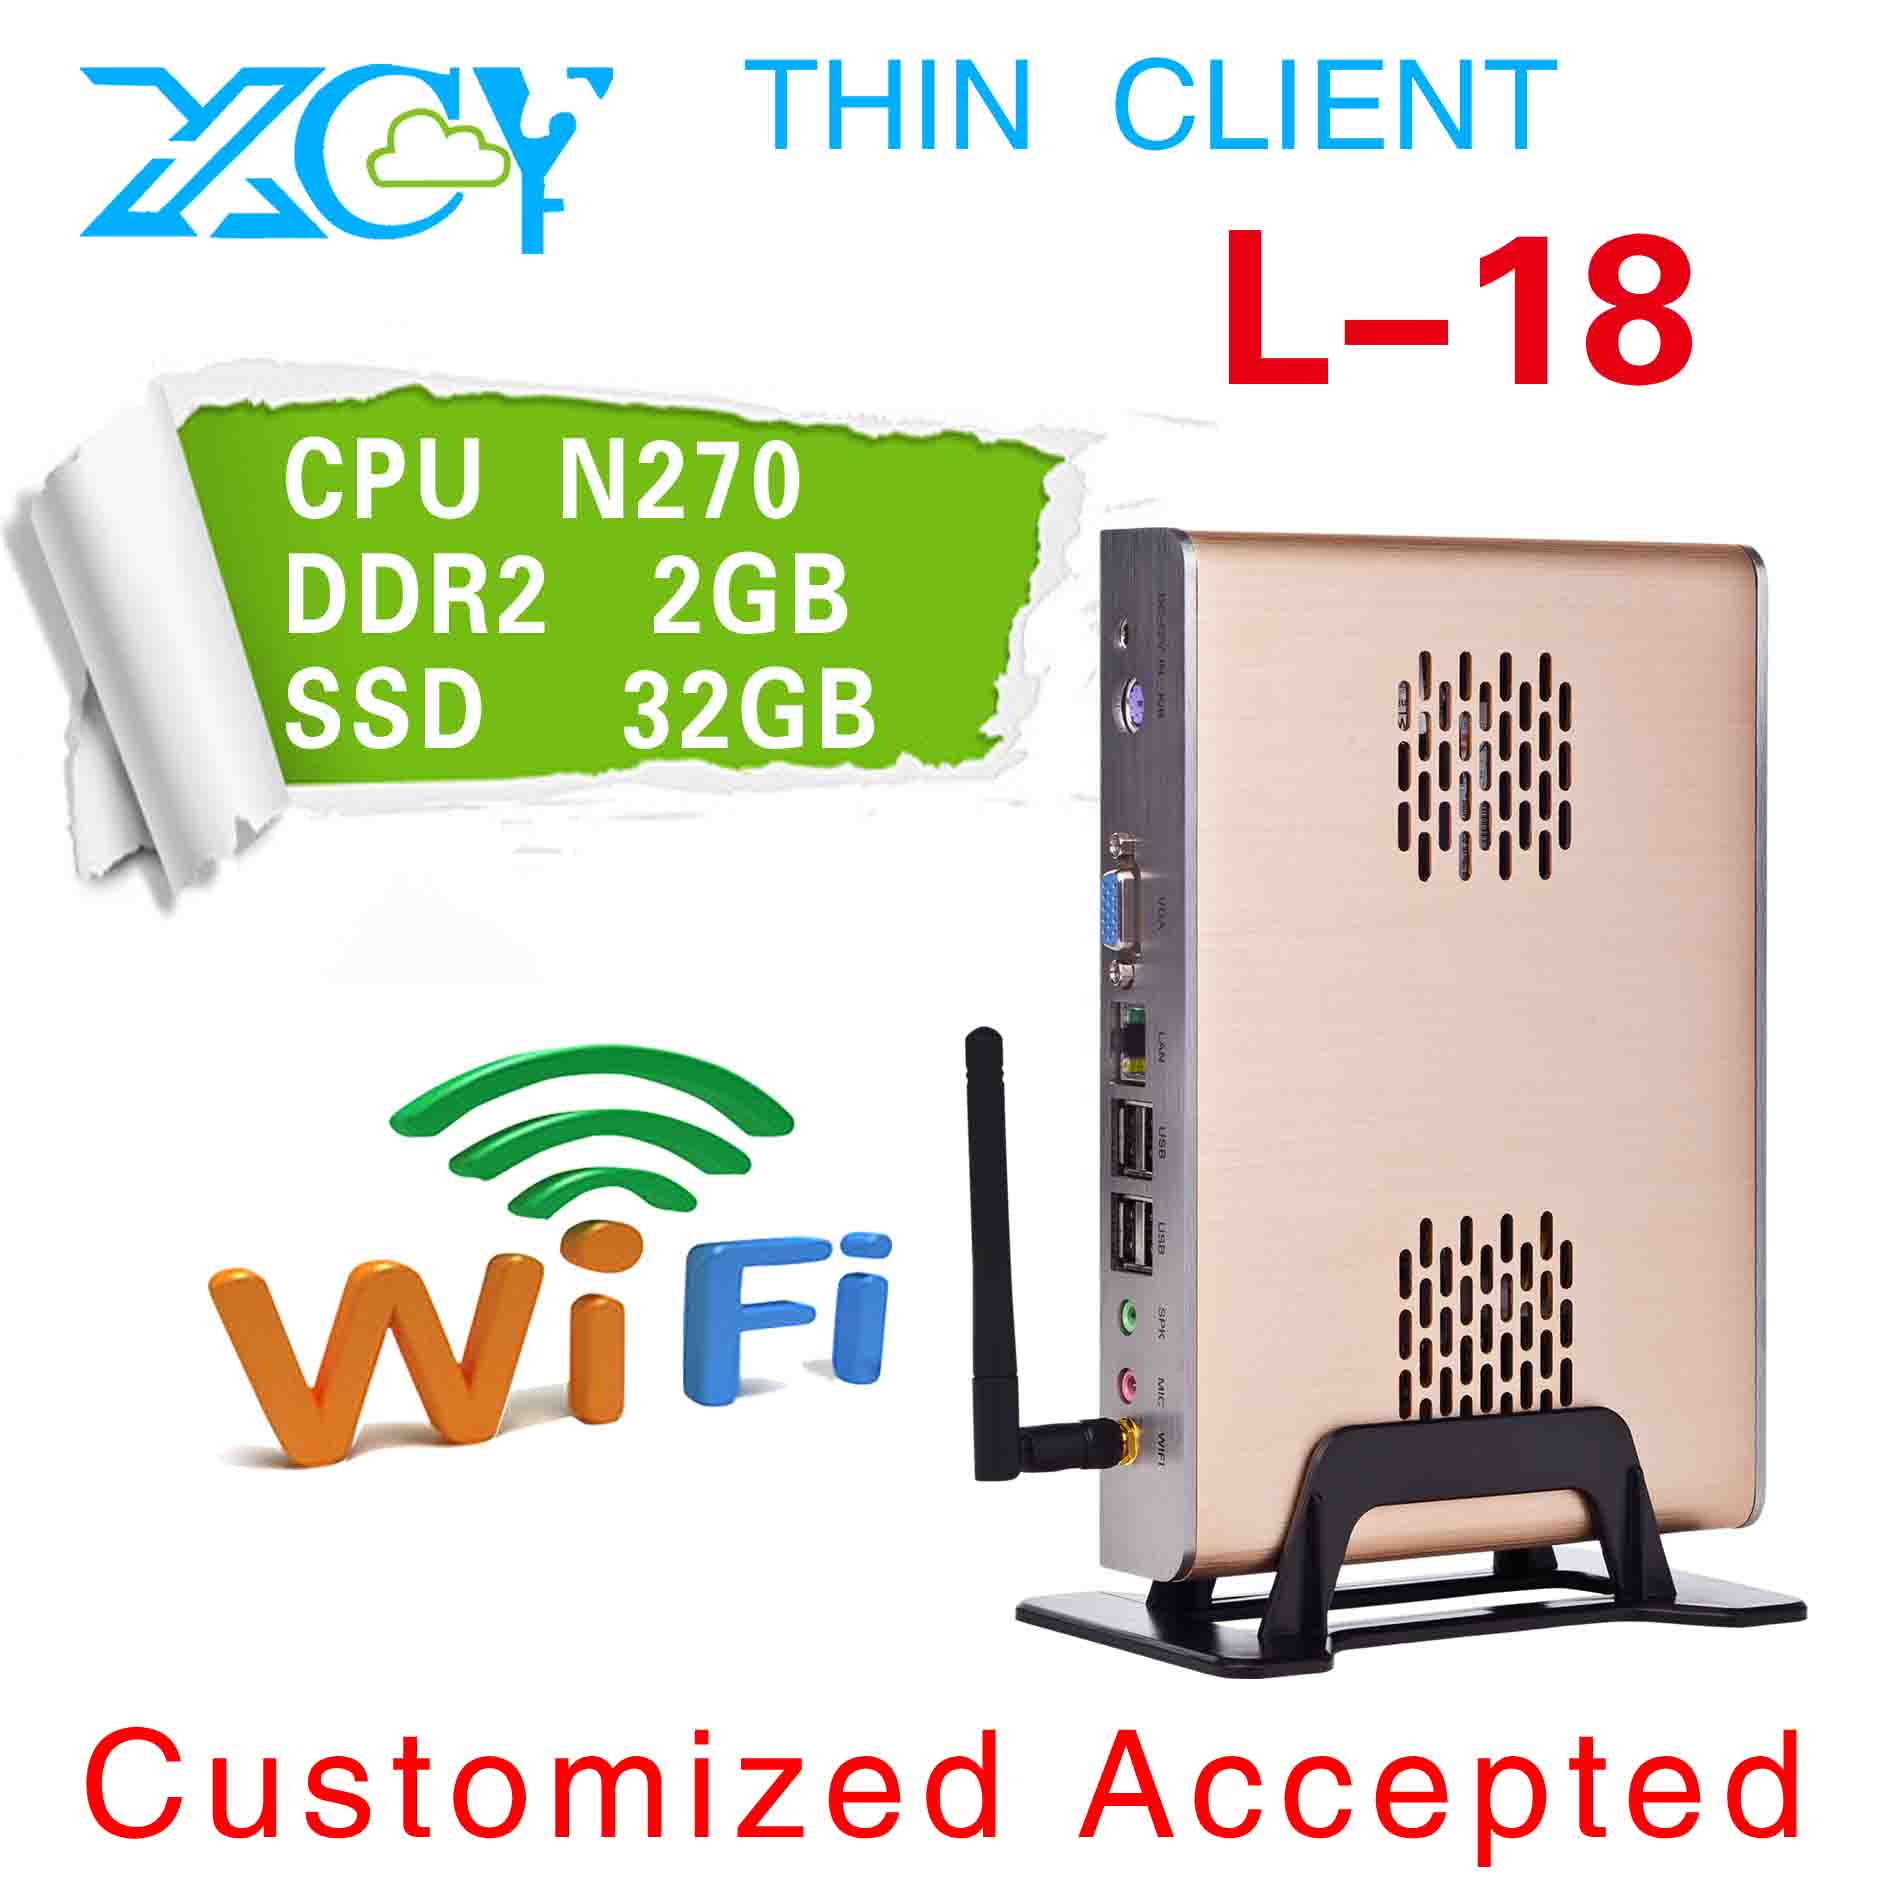 Embedded thin client, XCY L-18 fanless homebuilt computer, Intel atom N270 Gaming PC(China (Mainland))